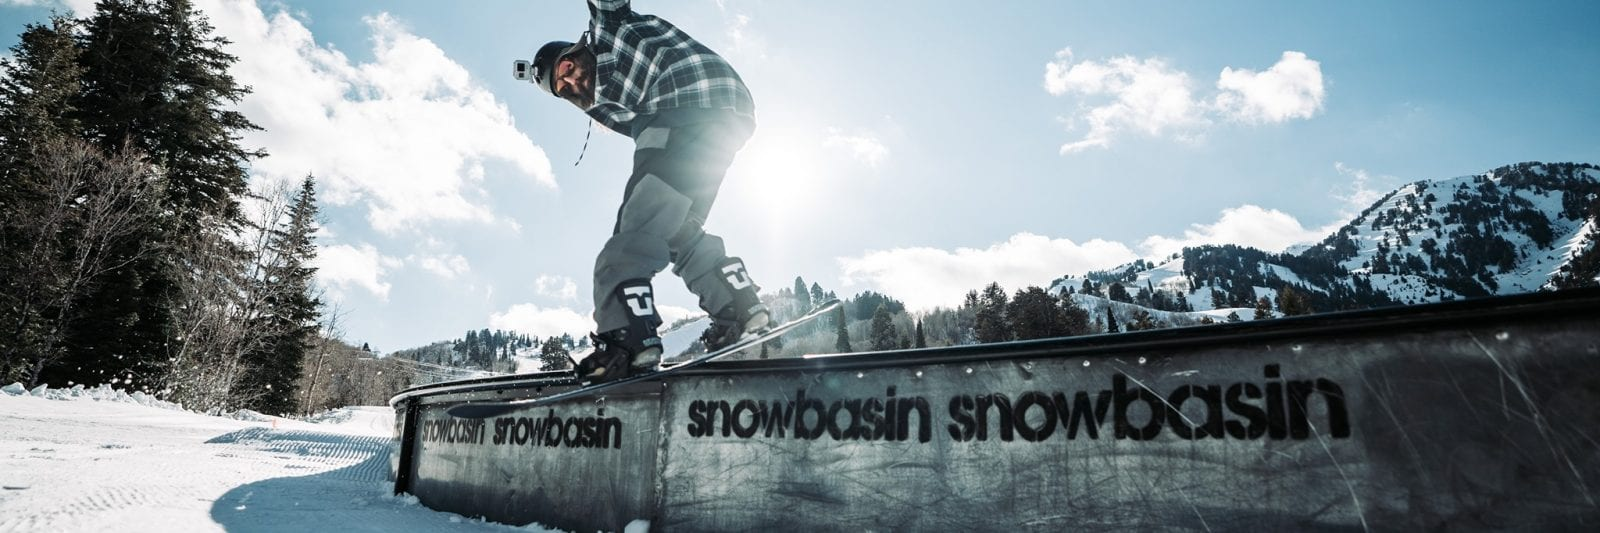 Image of a snowboarder grinding a rail at Snowbasin in Utah